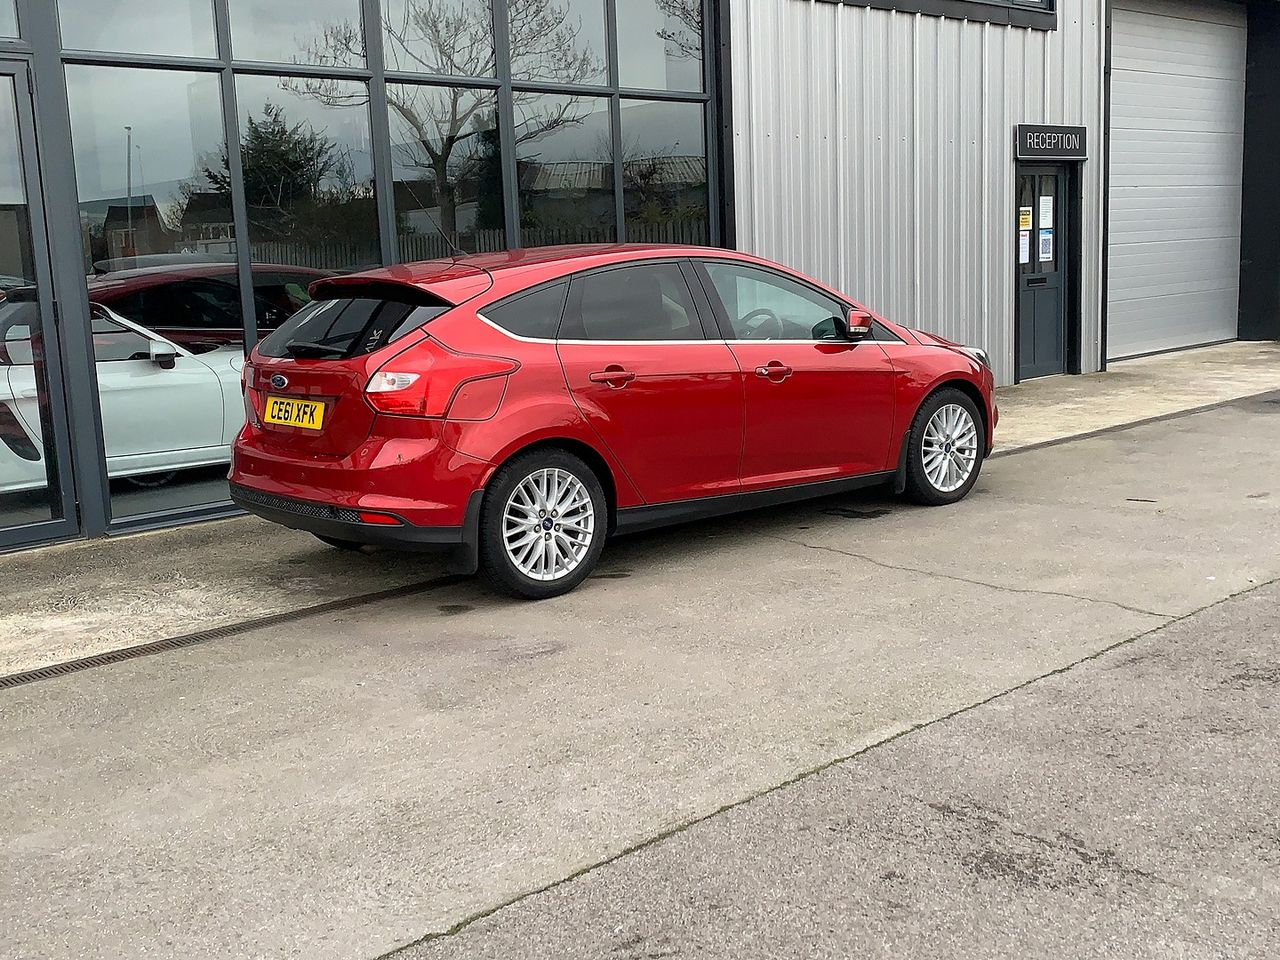 2011 FORD Focus Zetec 1.6 Ti-VCT 125 PS - Picture 4 of 9